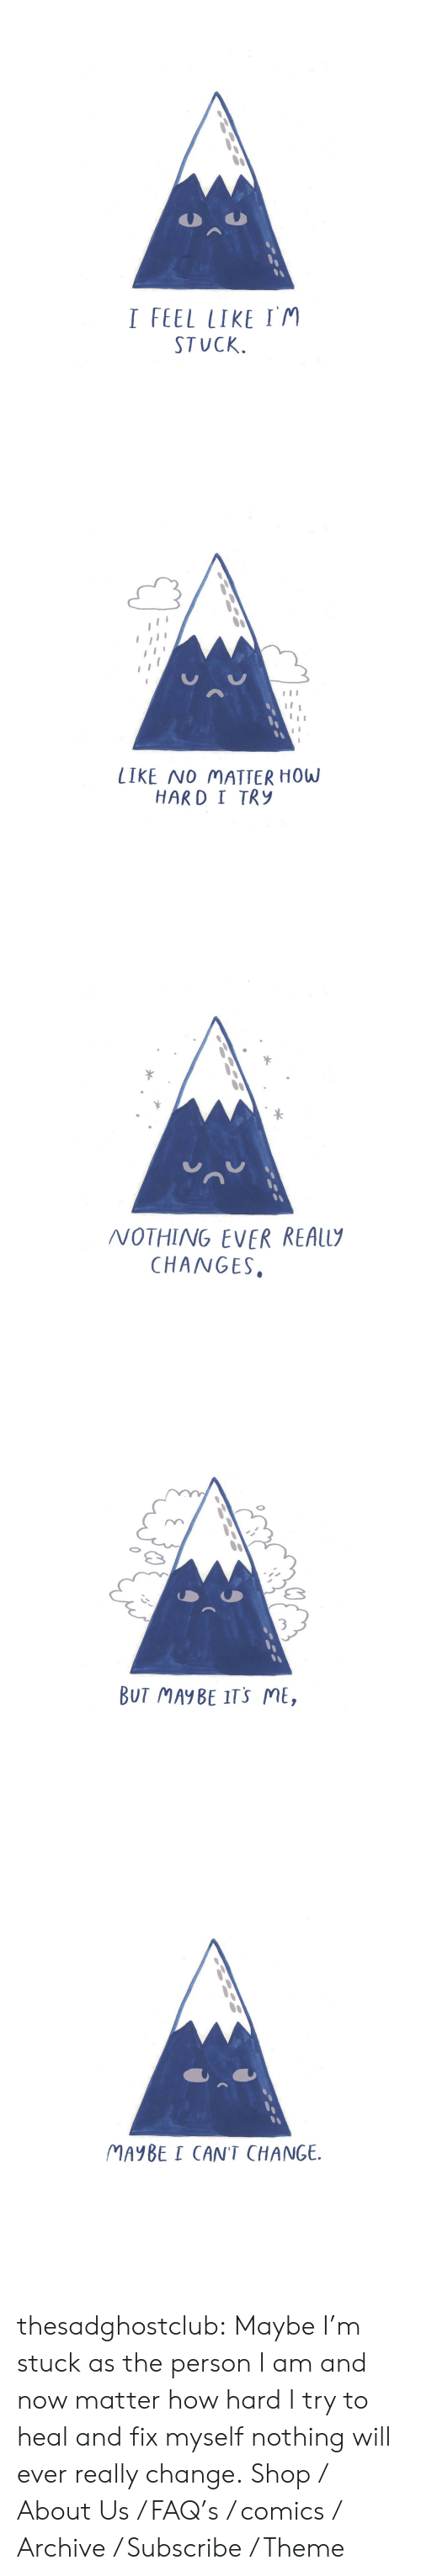 About Us: I FEEL LIKE IM  STUCK.   LIKE NO MATTER HOW  HARD I TRy   NOTHING EVER REAL  CHANGES.   3  BUT MAYBE ITS ME,   MAYBE I CAN'T CHANGE. thesadghostclub: Maybe I'm stuck as the person I am and now matter how hard I try to heal and fix myself nothing will ever really change.   Shop / About Us / FAQ's / comics / Archive / Subscribe / Theme